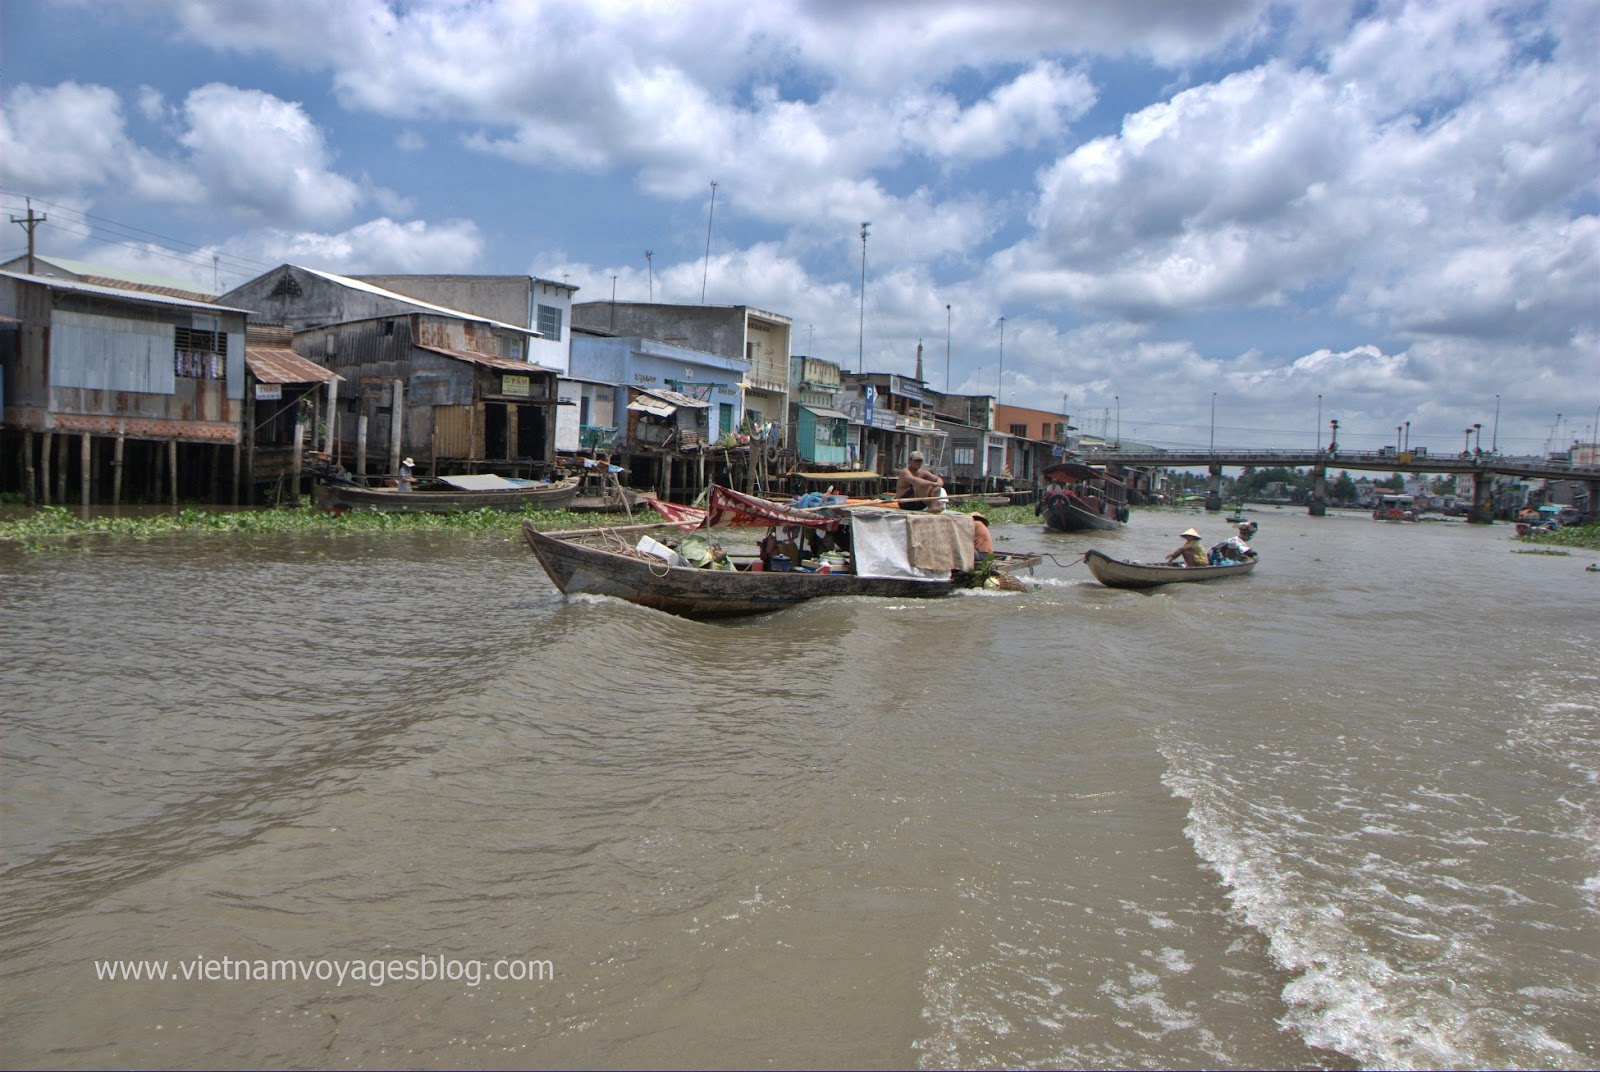 Weekend at Cai Be, Mekong Delta - Photo An Bui